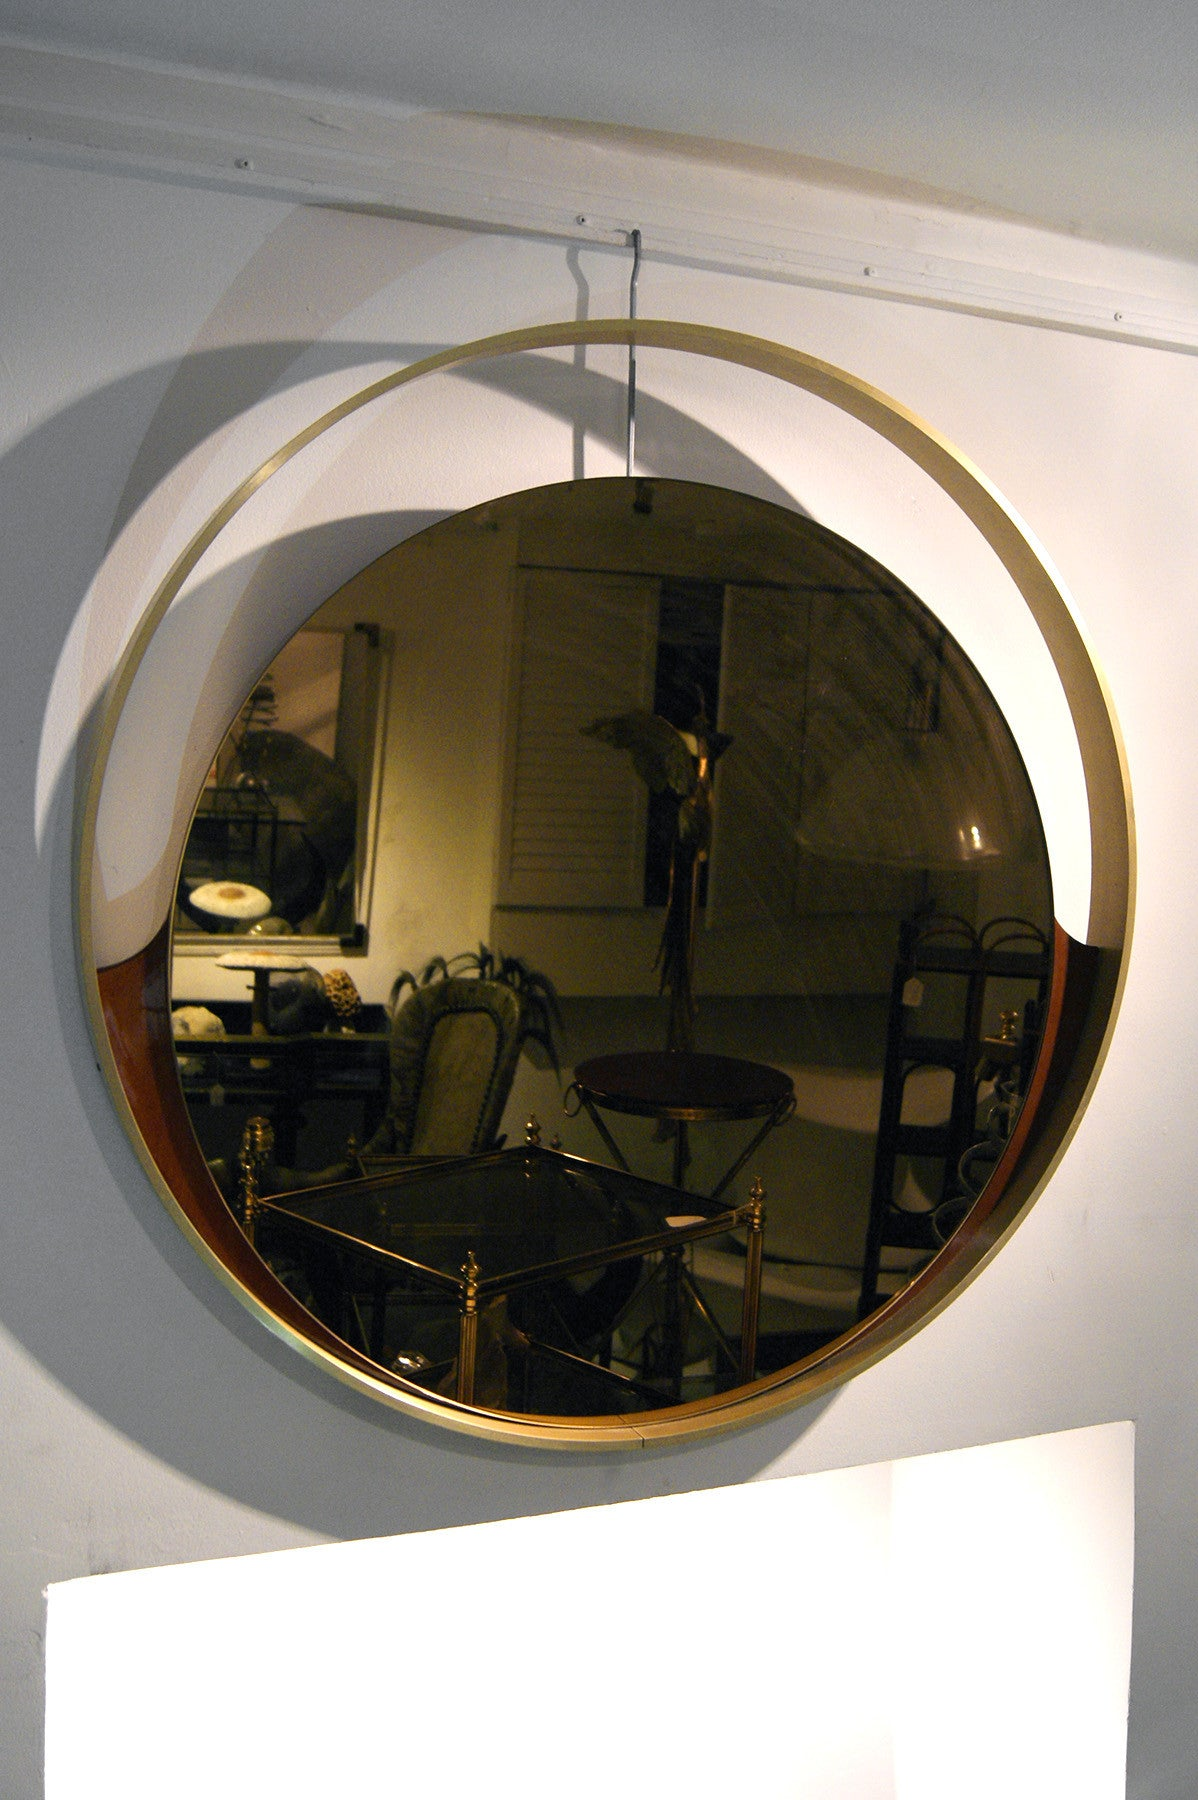 Large 1970s italian wall mirror with substantial solid brass frame.